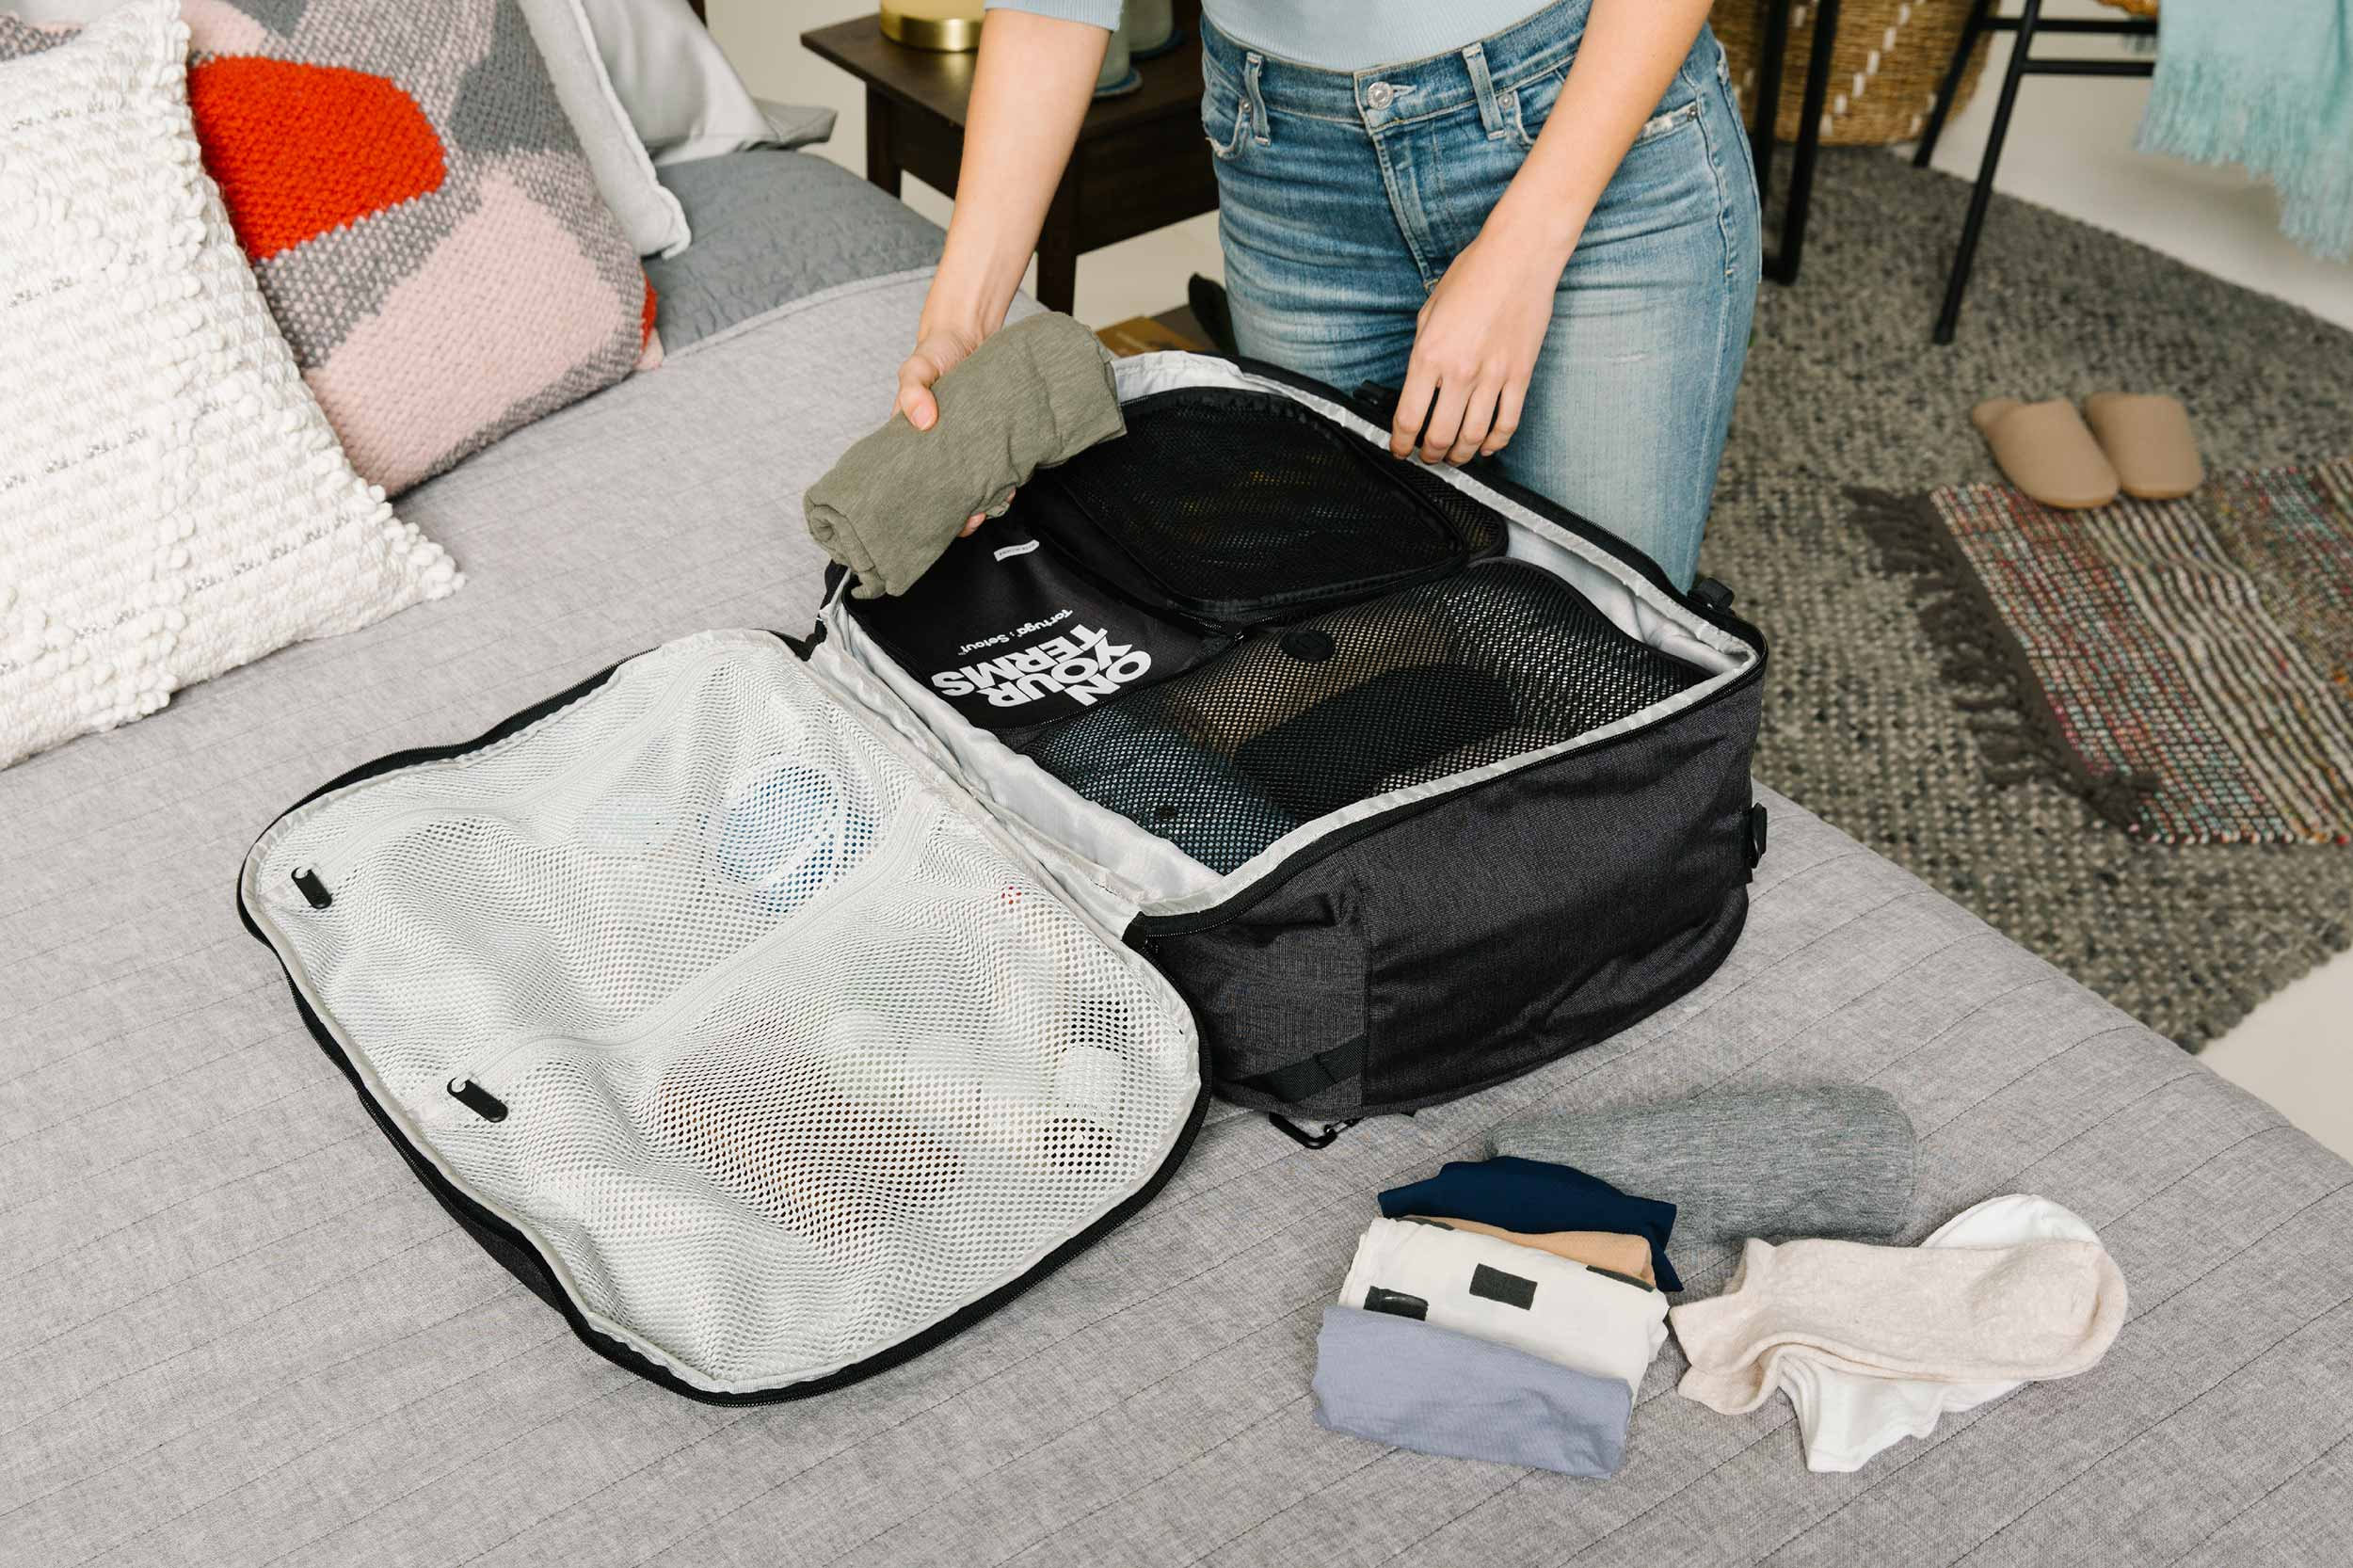 How To Make Your Clothes Smell Good In The Dryer how to keep your luggage and clothes from stinking | tortuga